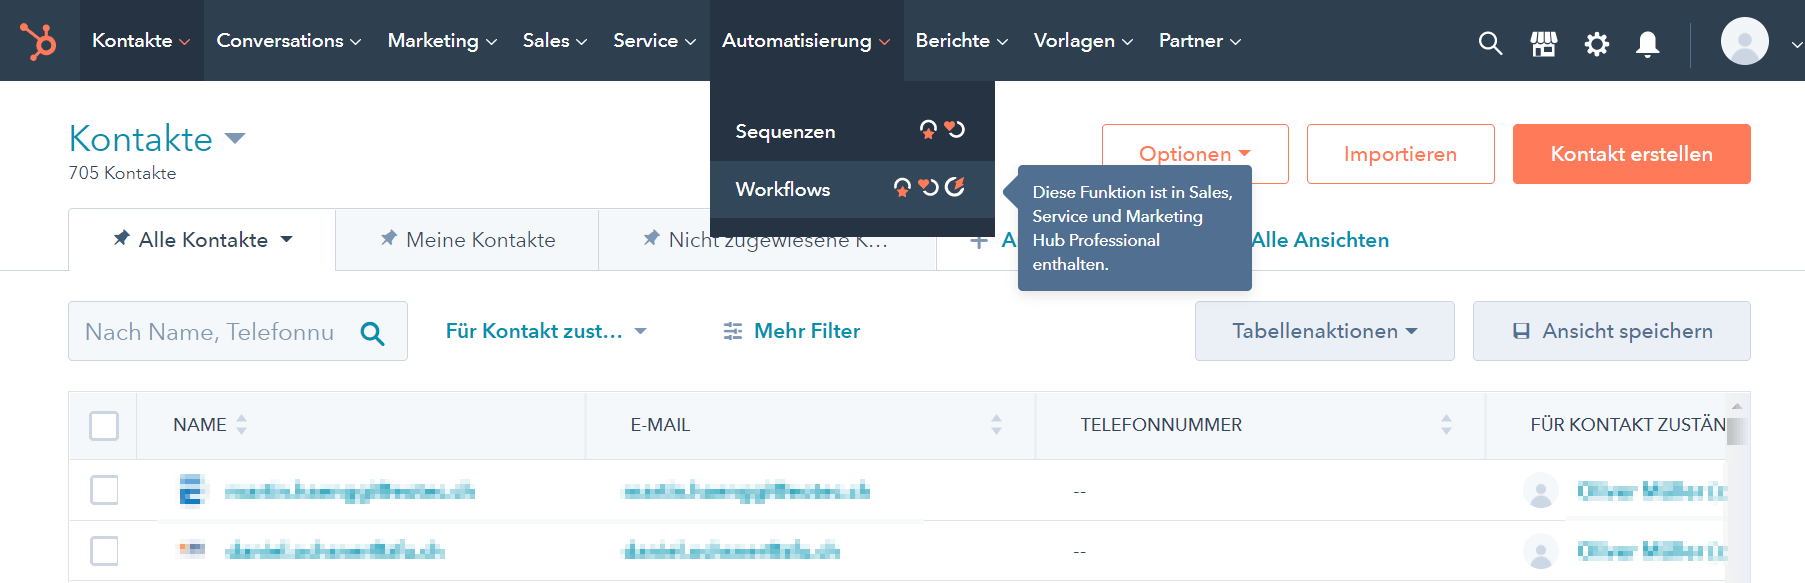 Hubspot teuer sobald Automation Workflows